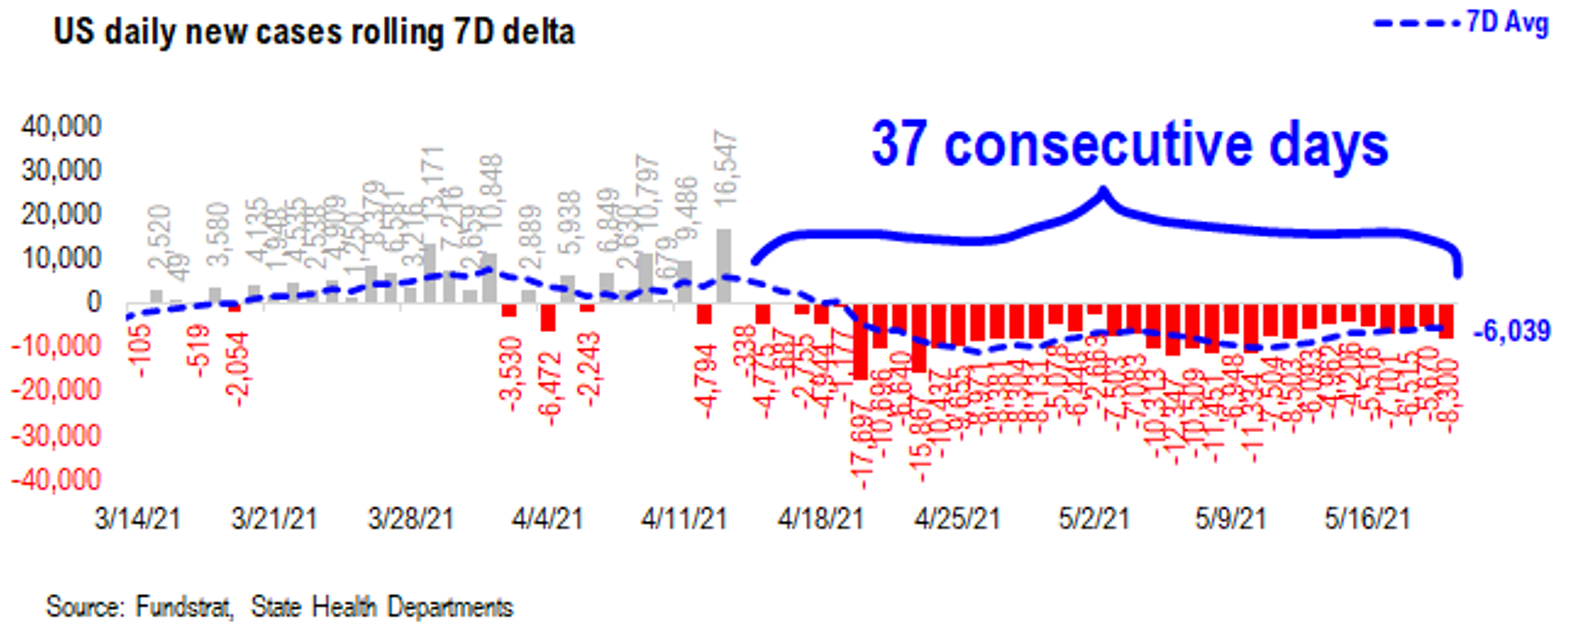 Leading Econ. Data Accelerating, COVID-19 Decline Continues